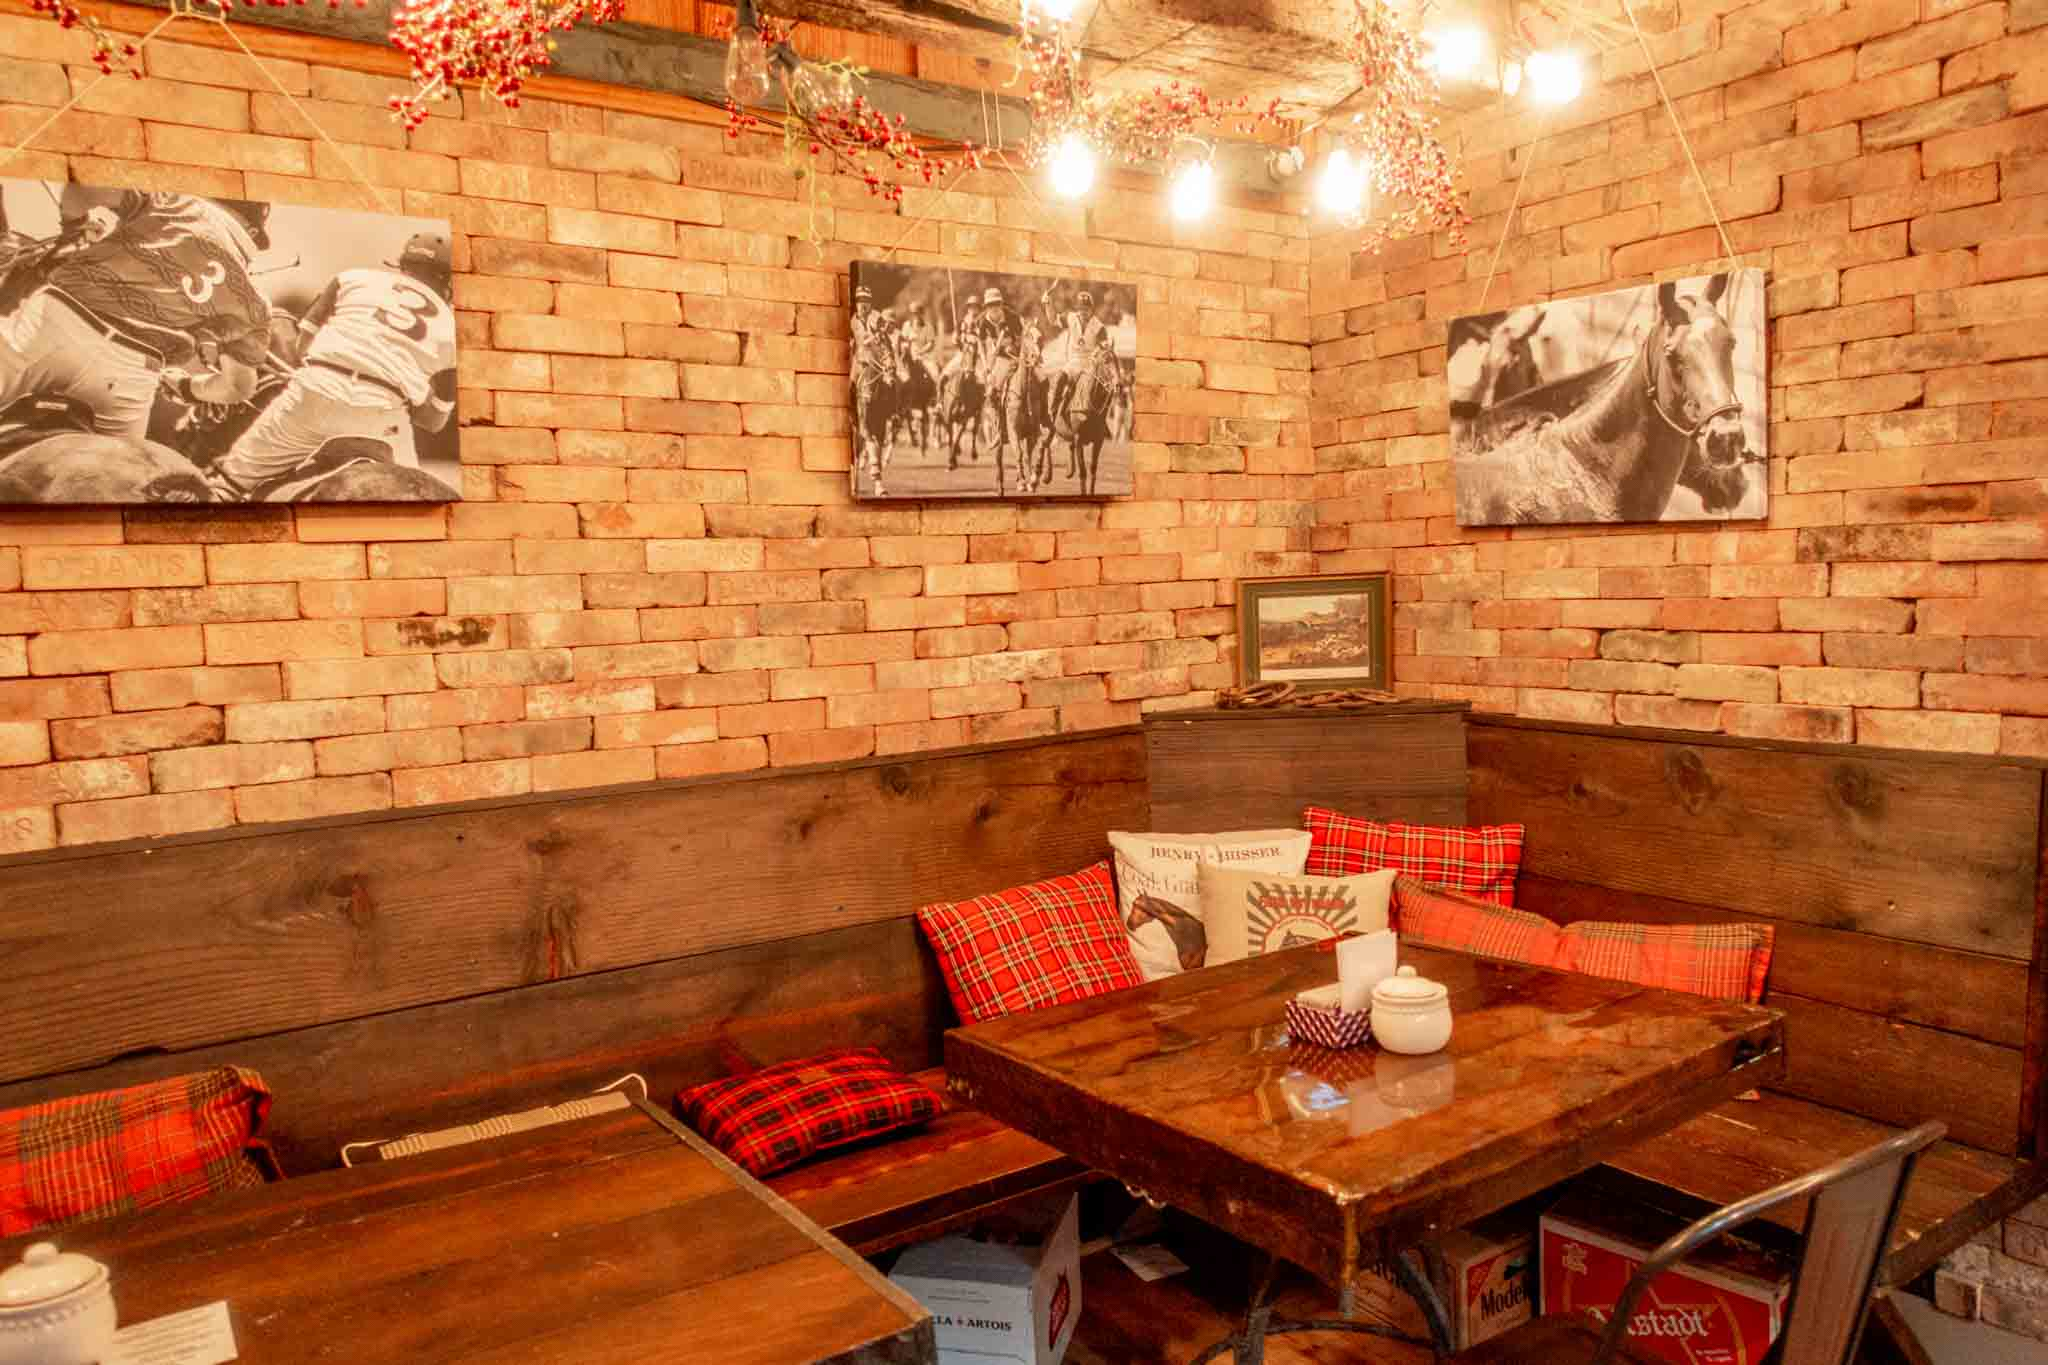 Cozy, equestrian-themed interior of The Stable Bar